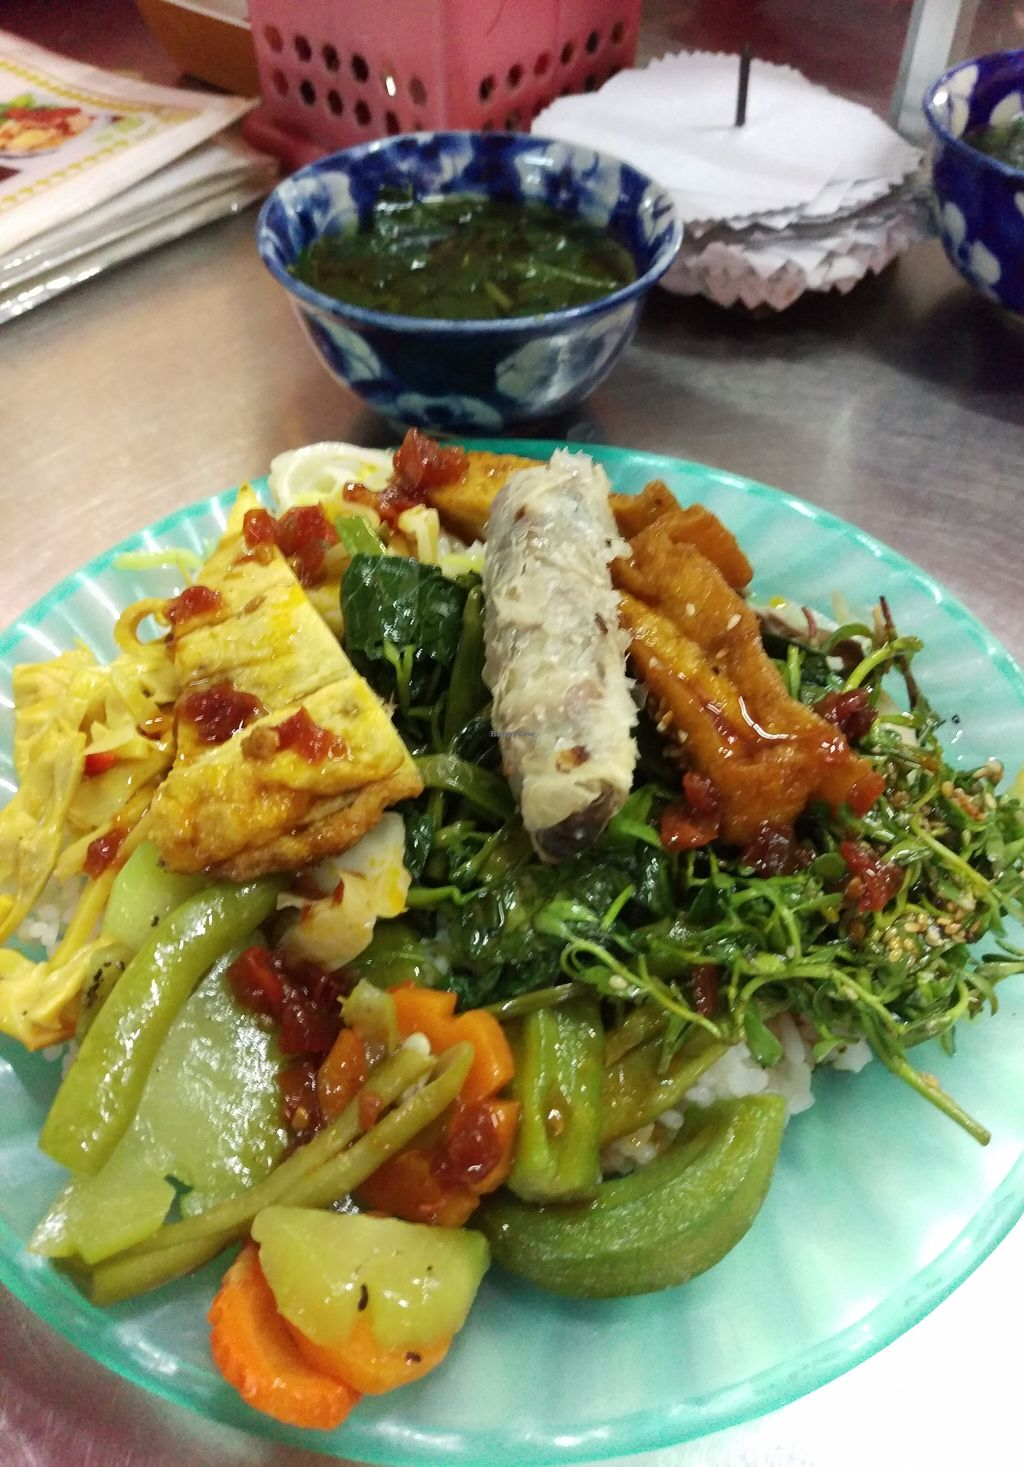 "Photo of Miss Thuy Vegetables - Food Stall  by <a href=""/members/profile/plottwisted"">plottwisted</a> <br/>Mix plate for VND30,000 (about USD1.50) <br/> September 18, 2015  - <a href='/contact/abuse/image/63326/118322'>Report</a>"